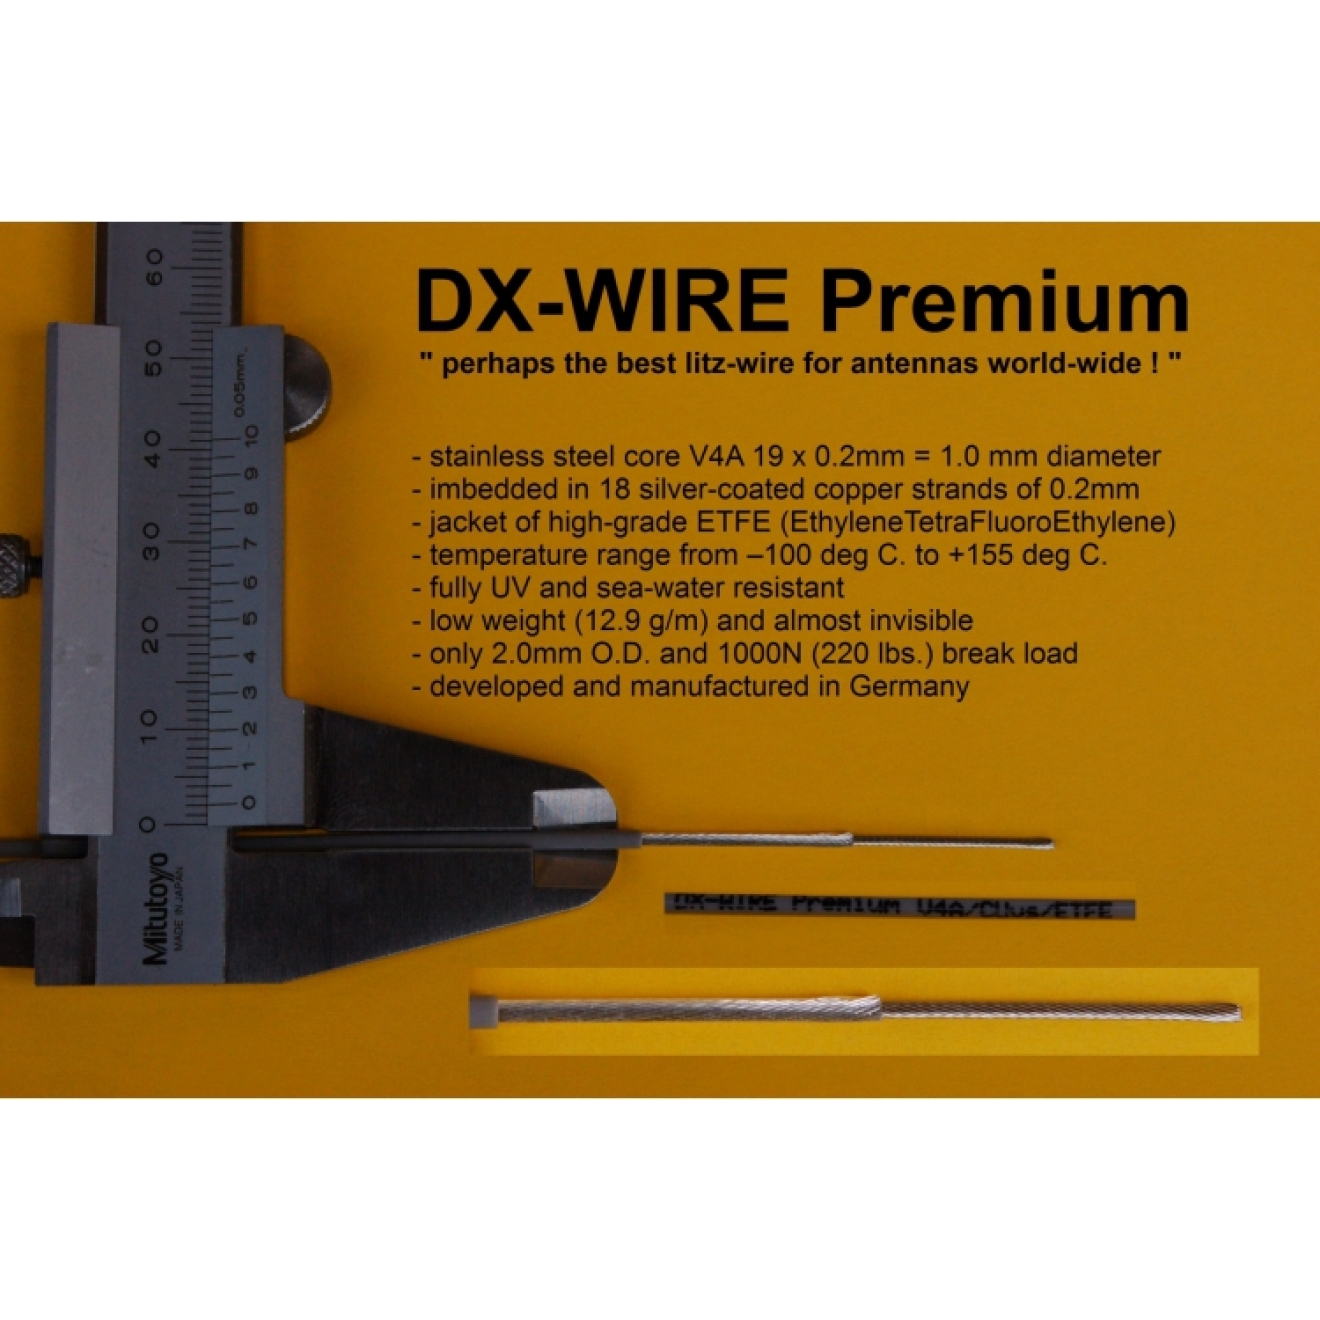 DX-WIRE Premium Meterware